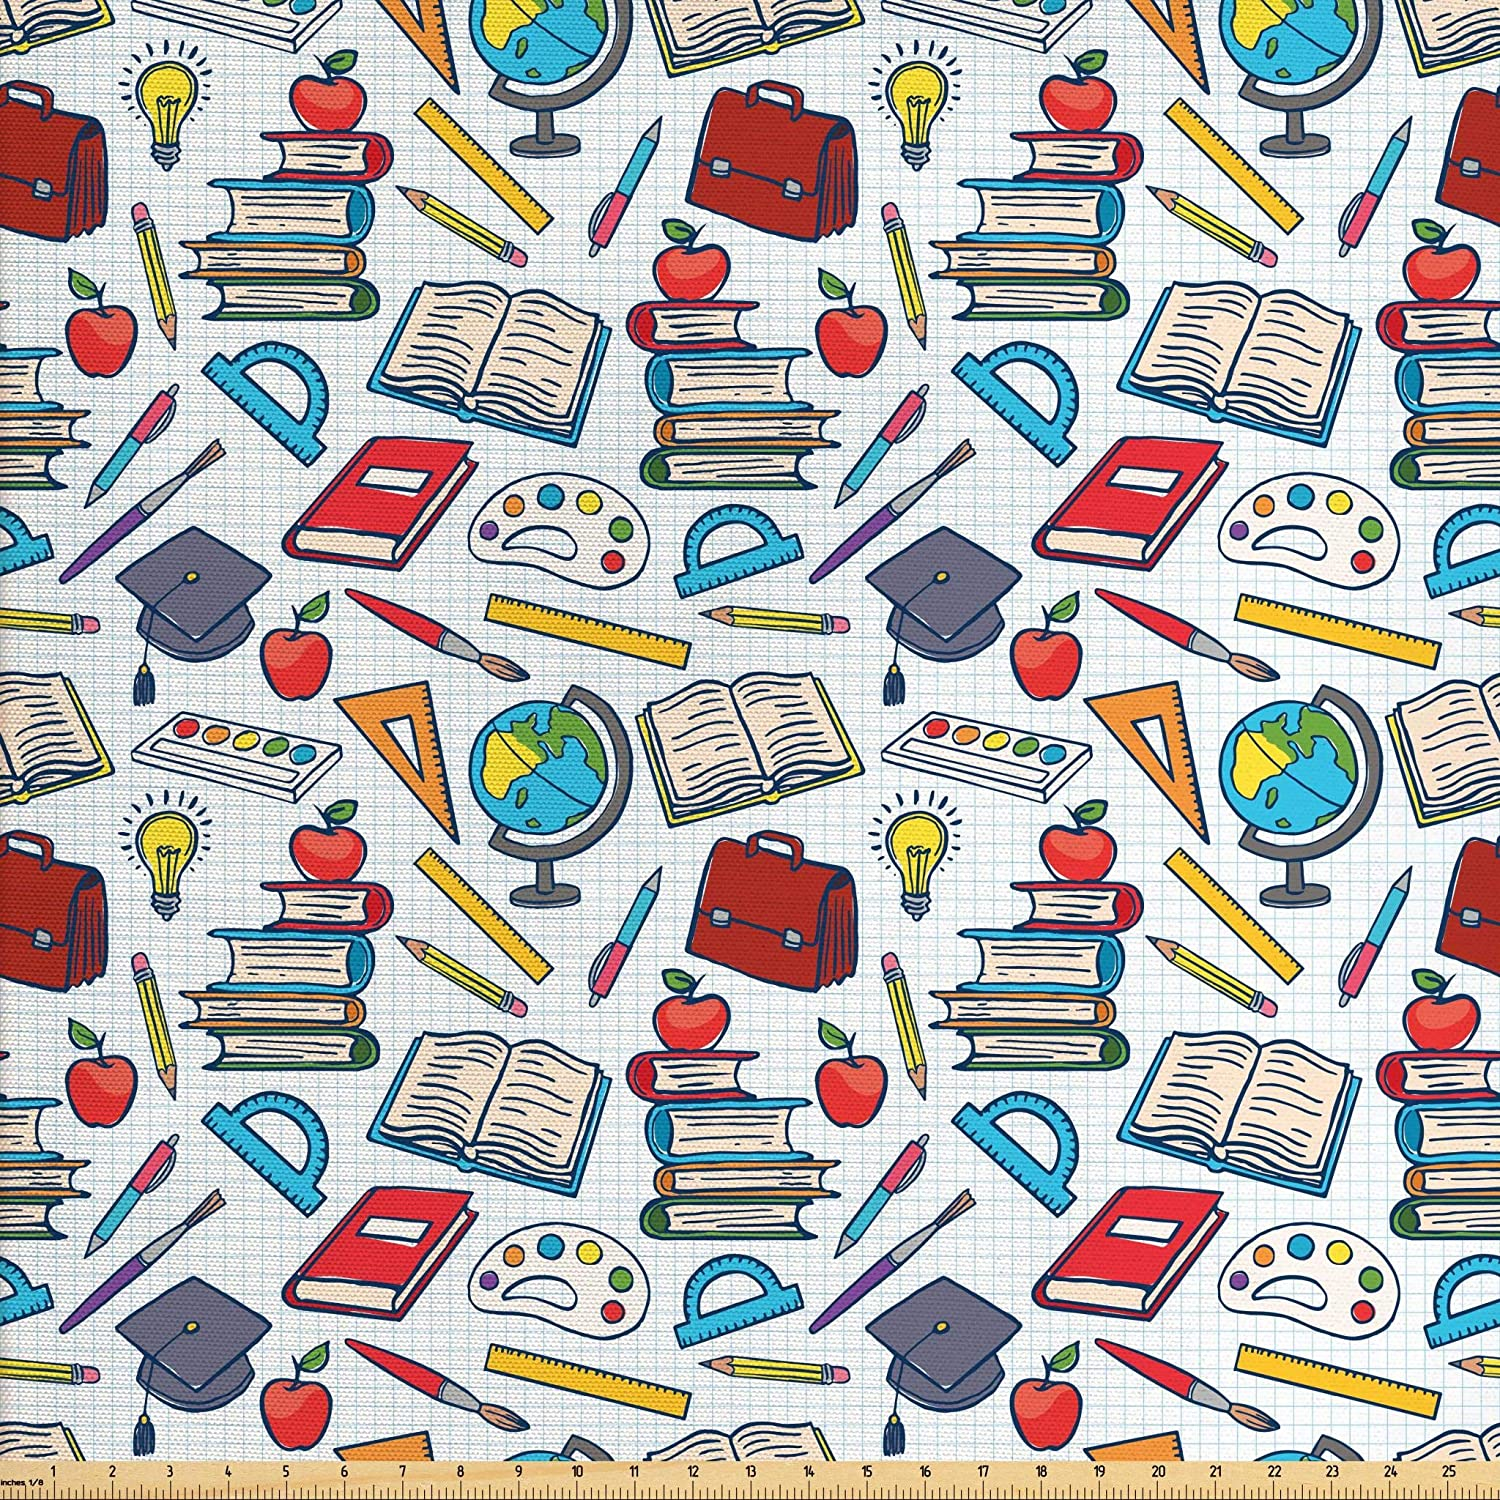 Ambesonne School Fabric by The Yard, Elementary School Theme Student Supplies Globe Paints and Brushes Books Education, Decorative Fabric for Upholstery and Home Accents, 5 Yards, Blue Red